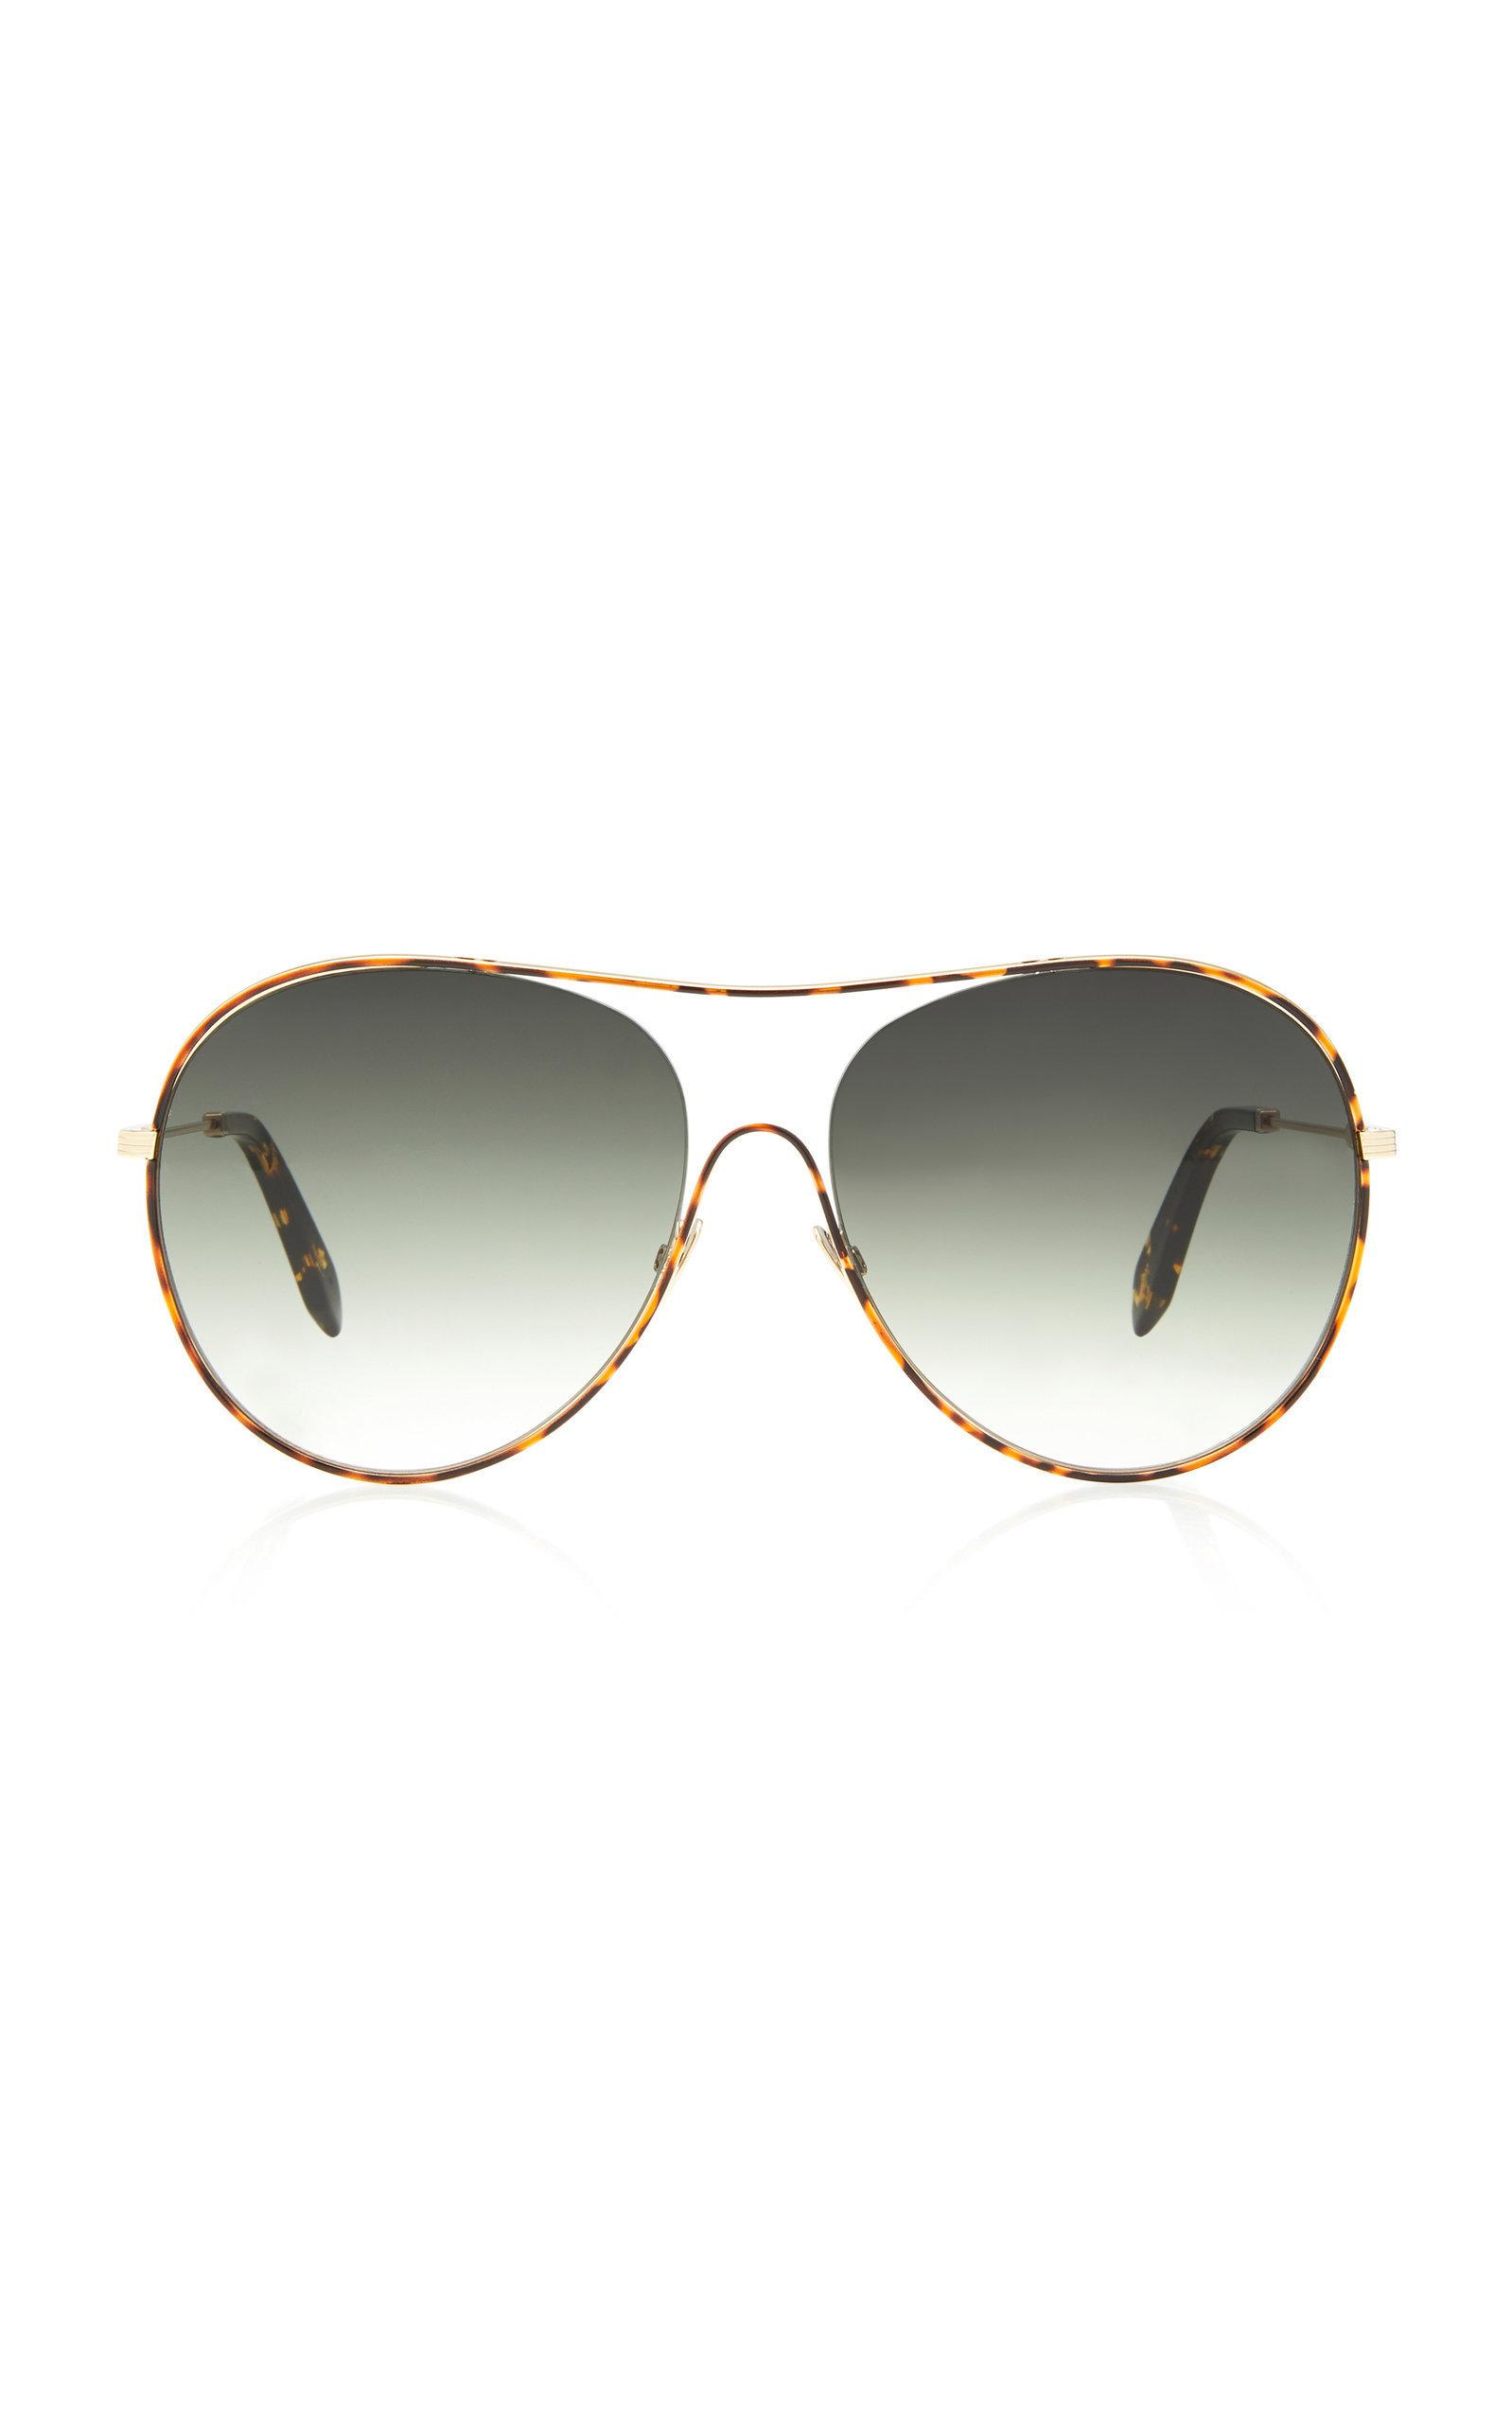 ff0a9ed15c69 Victoria Beckham s round-frame sunglasses are crafted from acetate in an  oversized silhouette. Designed with gold-toned metal sides this pair is  fitted with ...